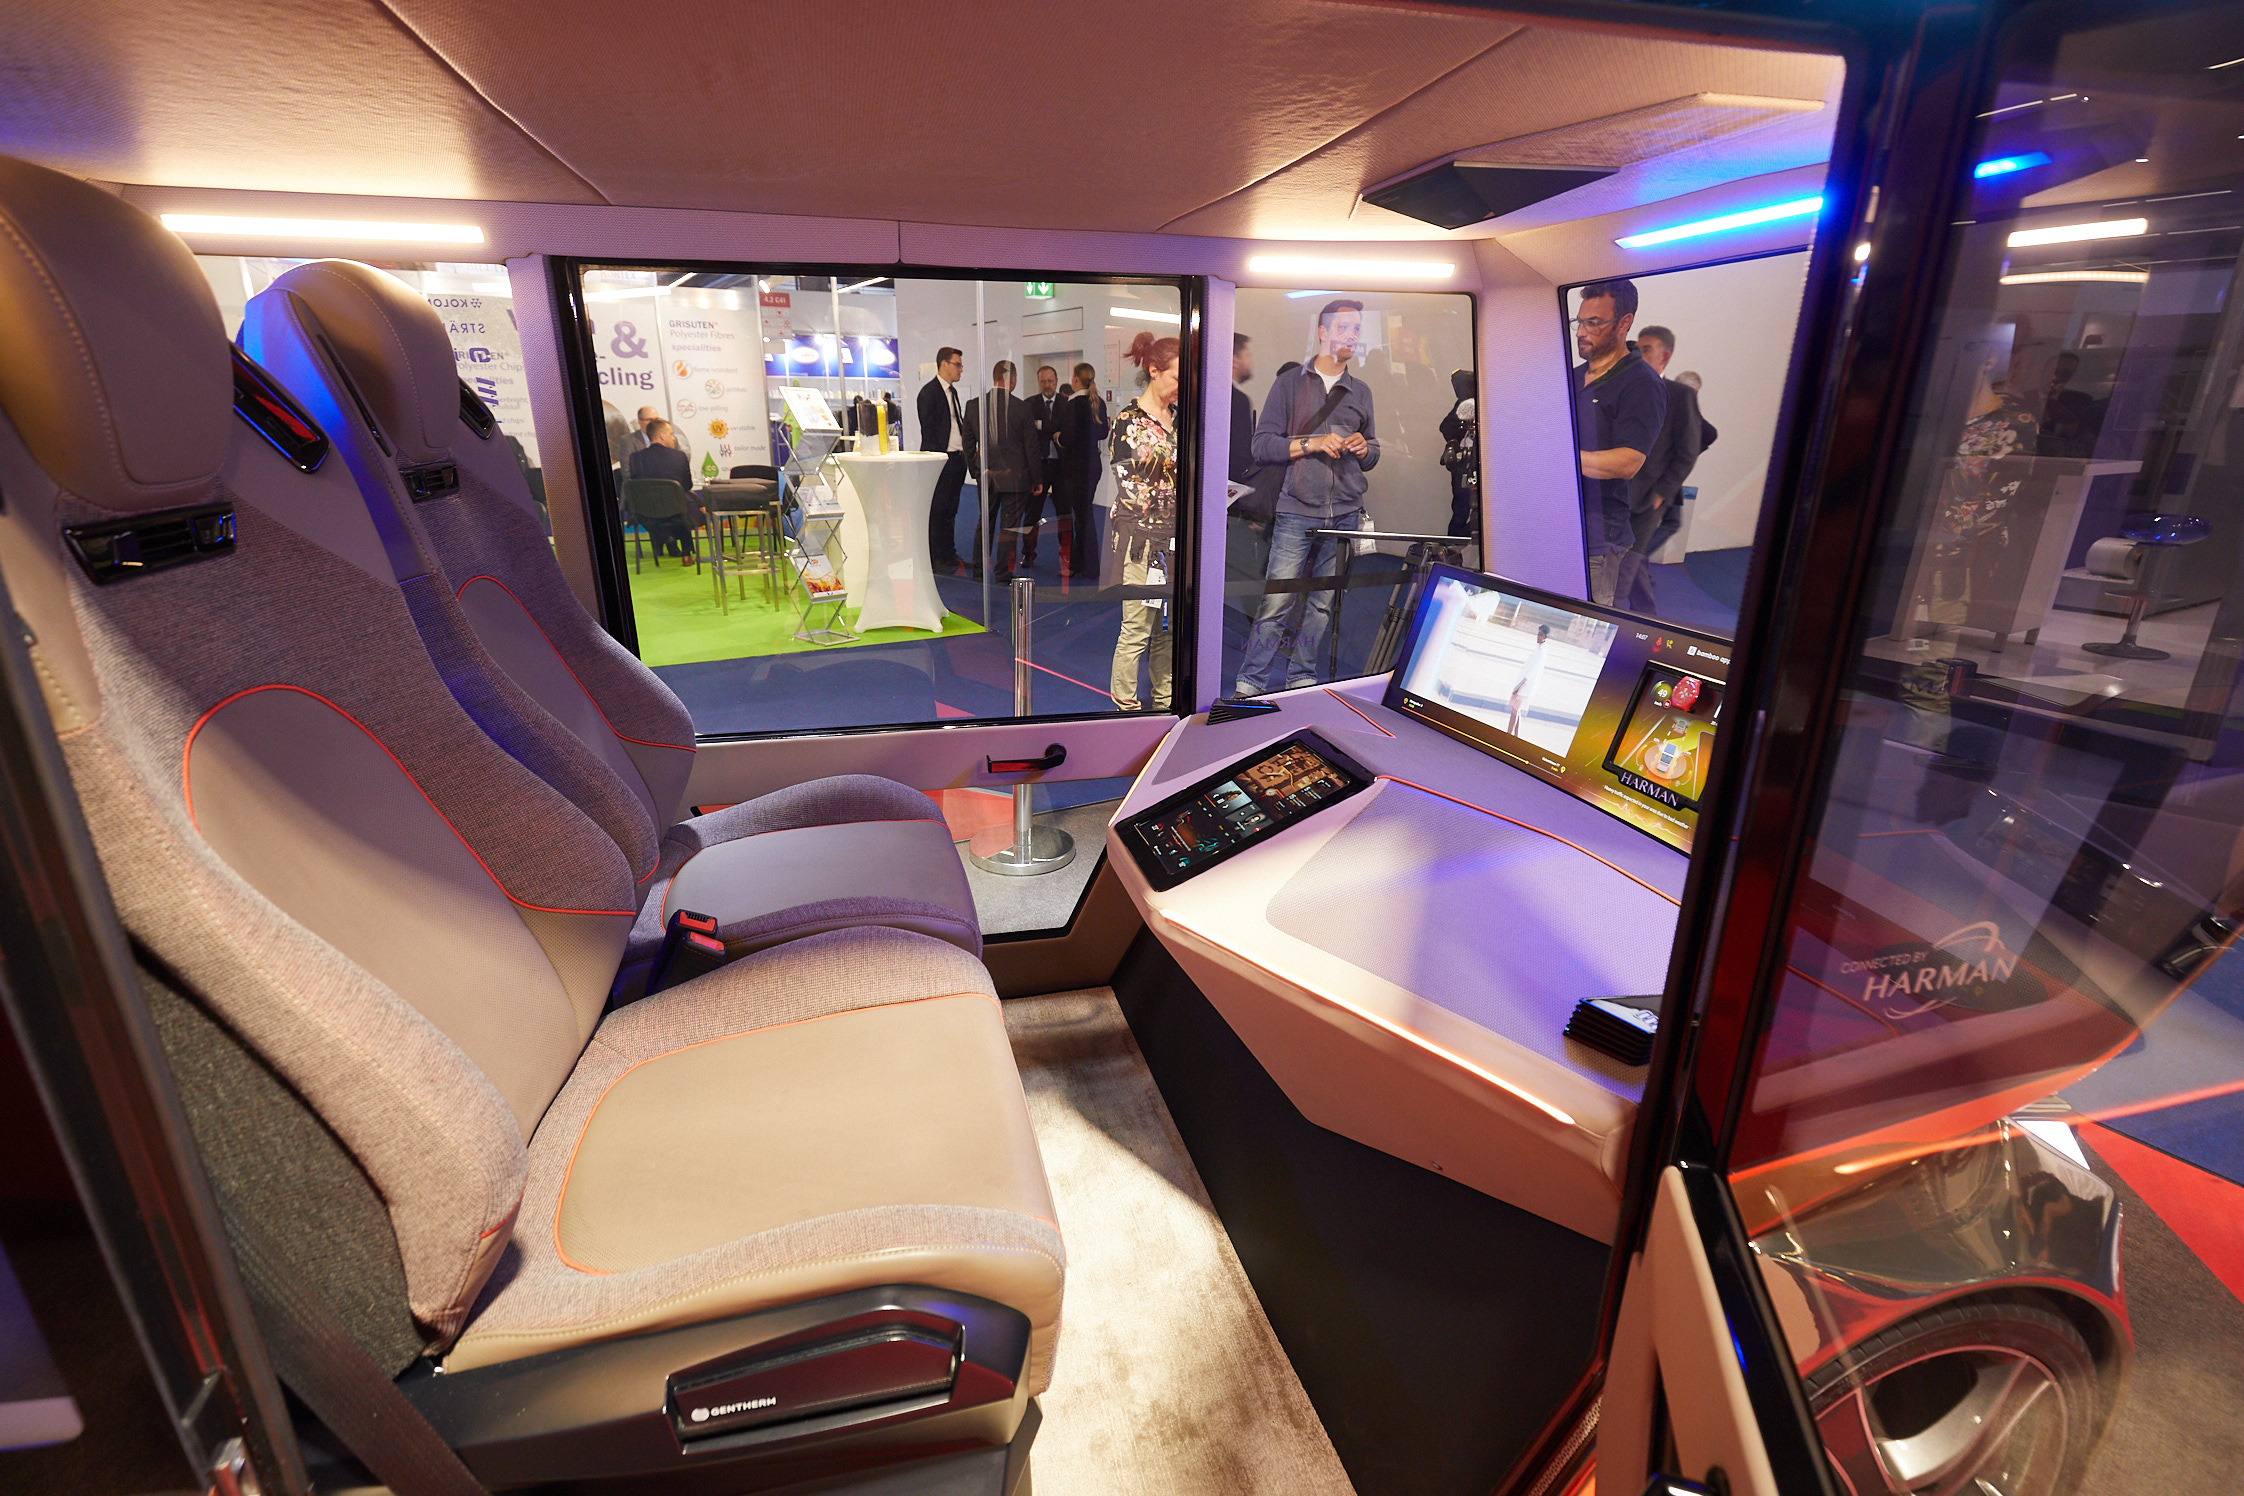 Mobiltech: Concept e-car with sustainable seats made with alpaca yarns